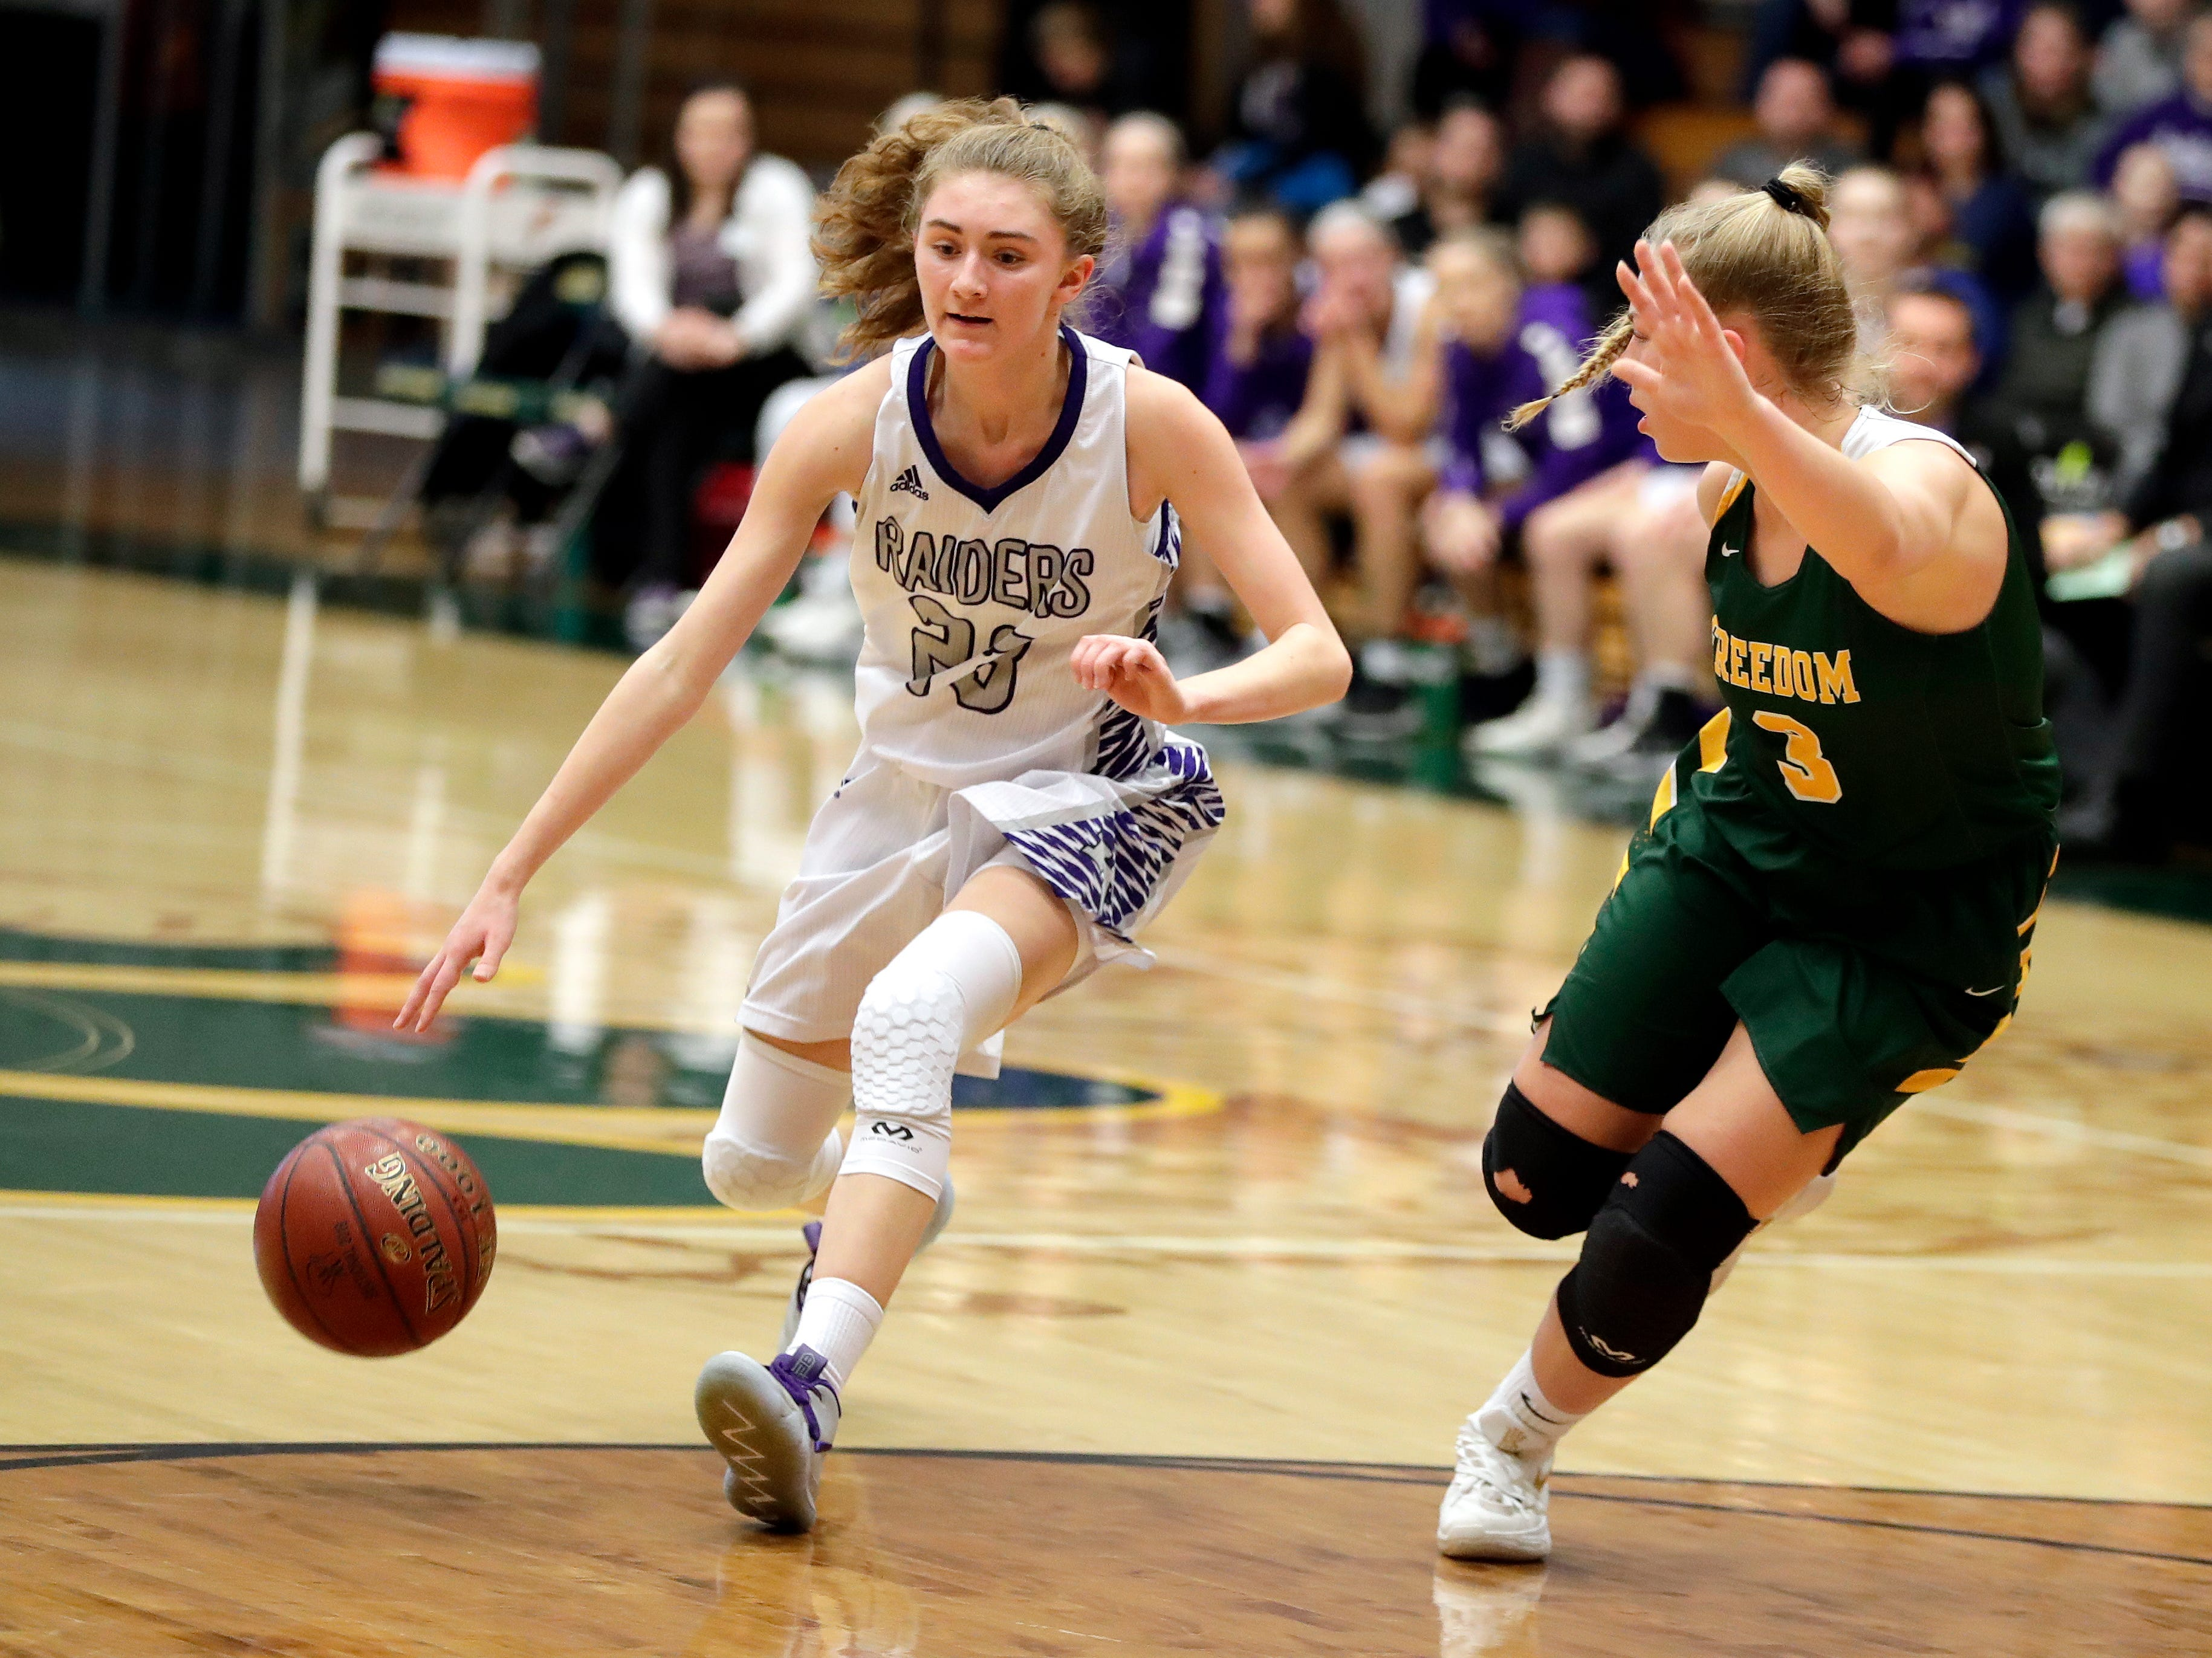 Kiel's Jocelyn Aprill (23) goes against an opponent during a WIAA Division 3 girls basketball sectional championship against Freedom held March 2, 2019 at Ashwaubenon High School. Freedom defeated Kiel 53-40.